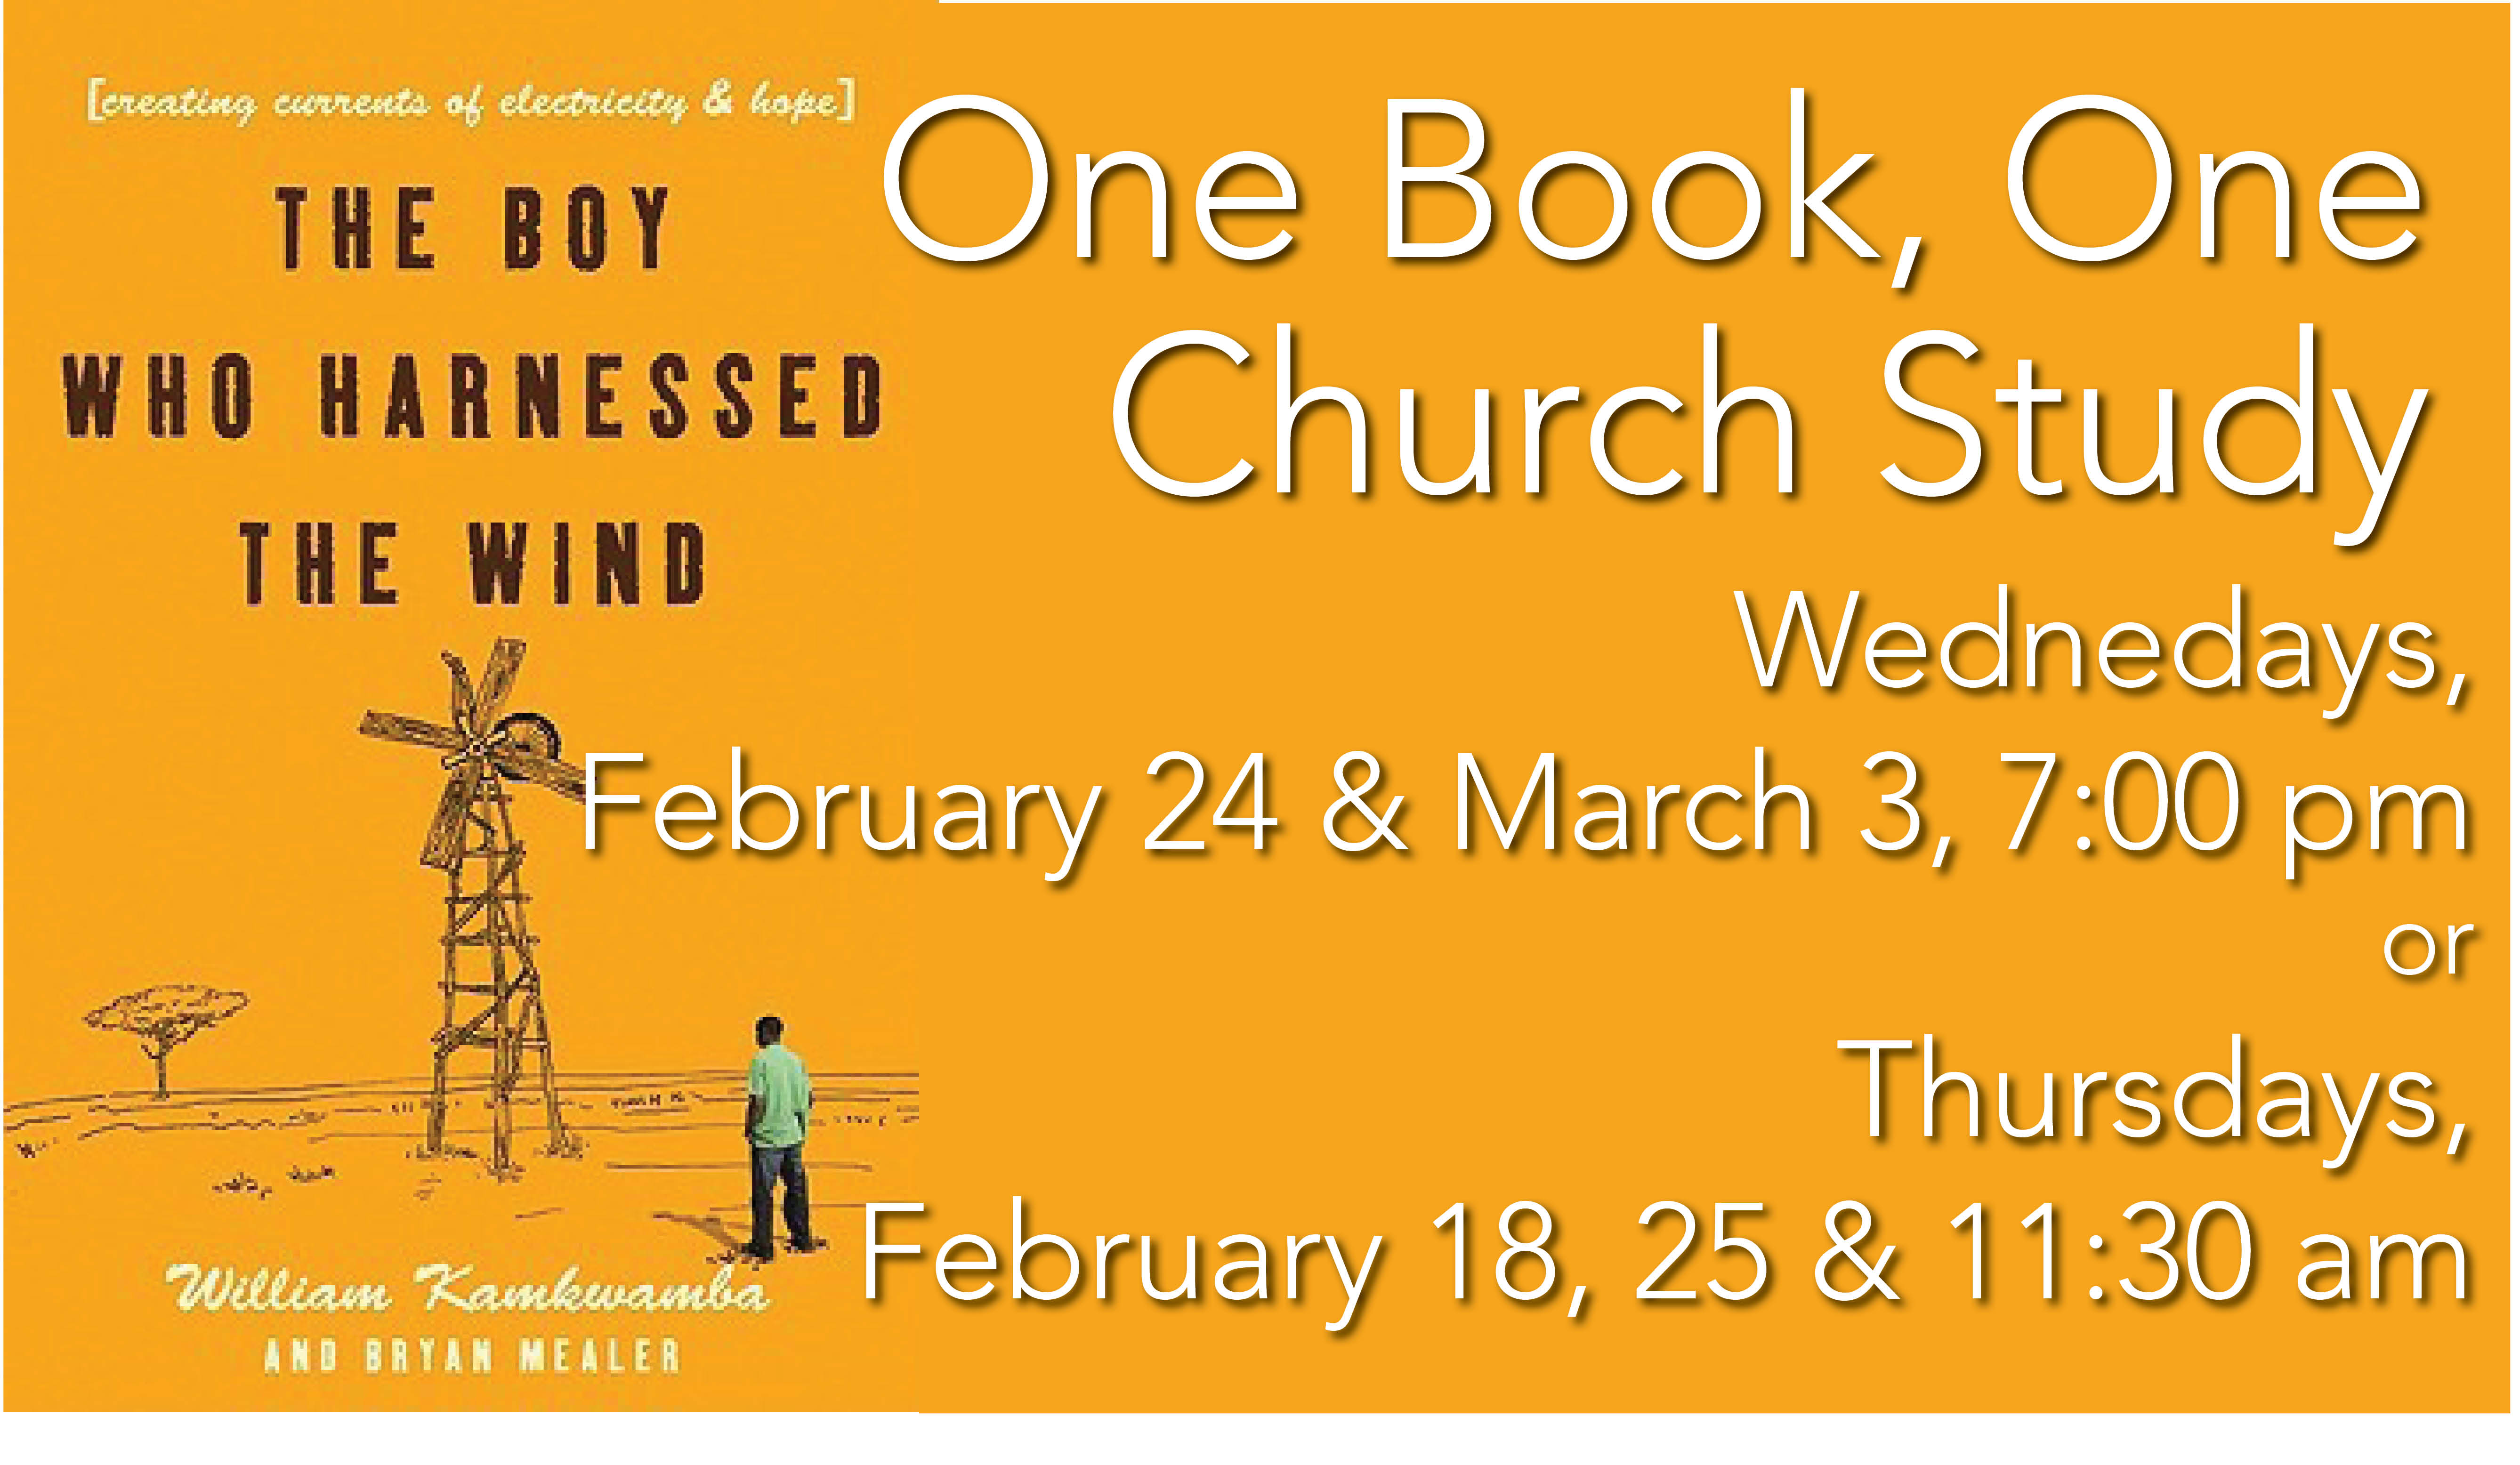 Announcement slide - one book one church